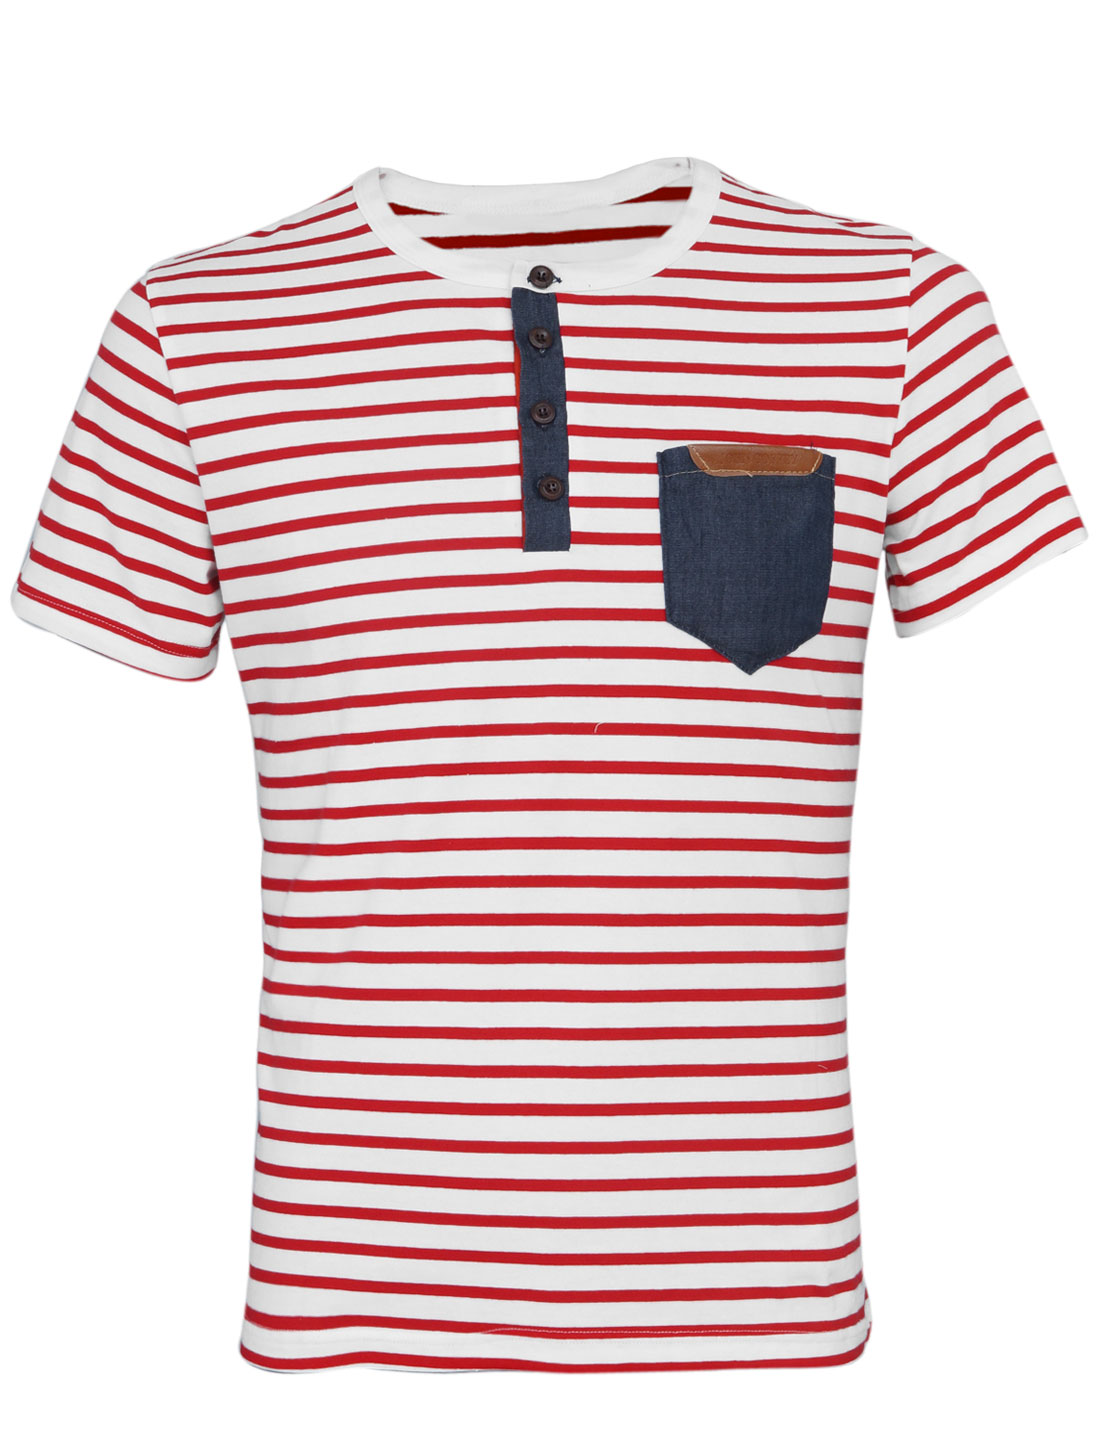 Men Cozy Fit Stripes 1/4 Placket Chest Pocket Tee Shirt Red White M